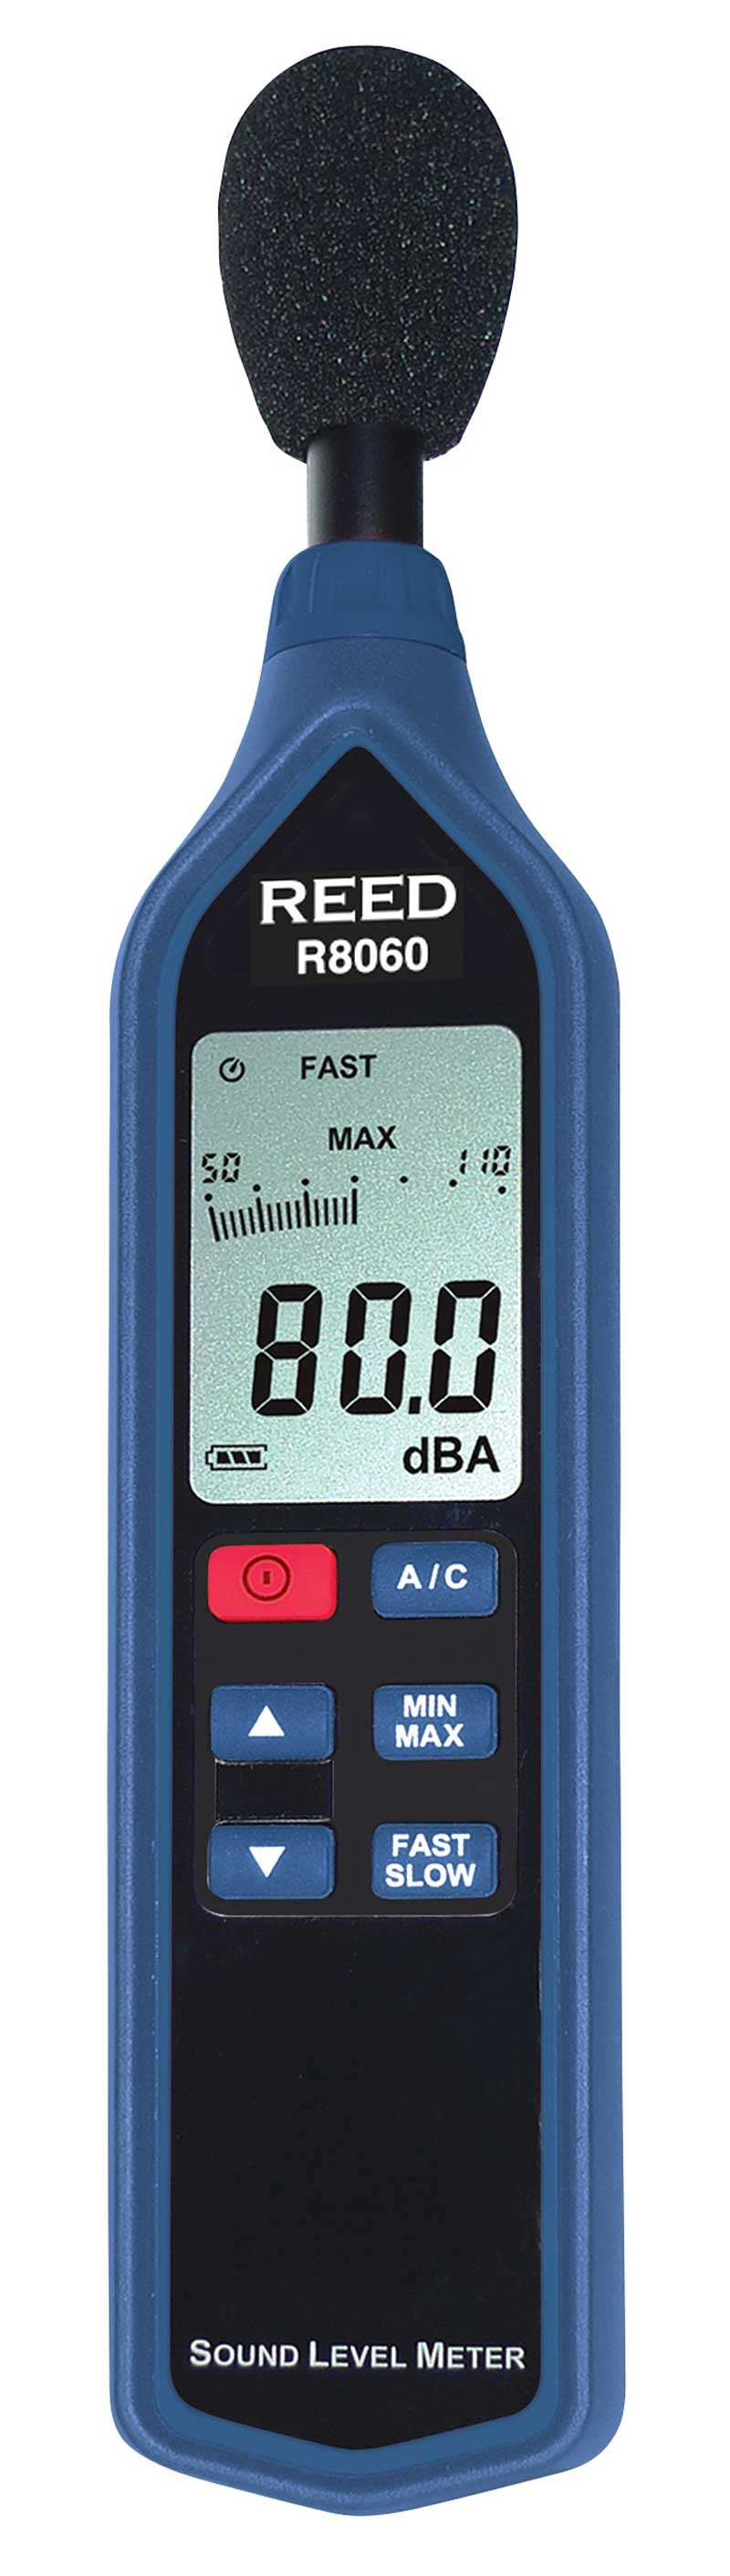 REED R8060 Sound Level Meter with Bargraph, Type 2, 30 to 130 dB-